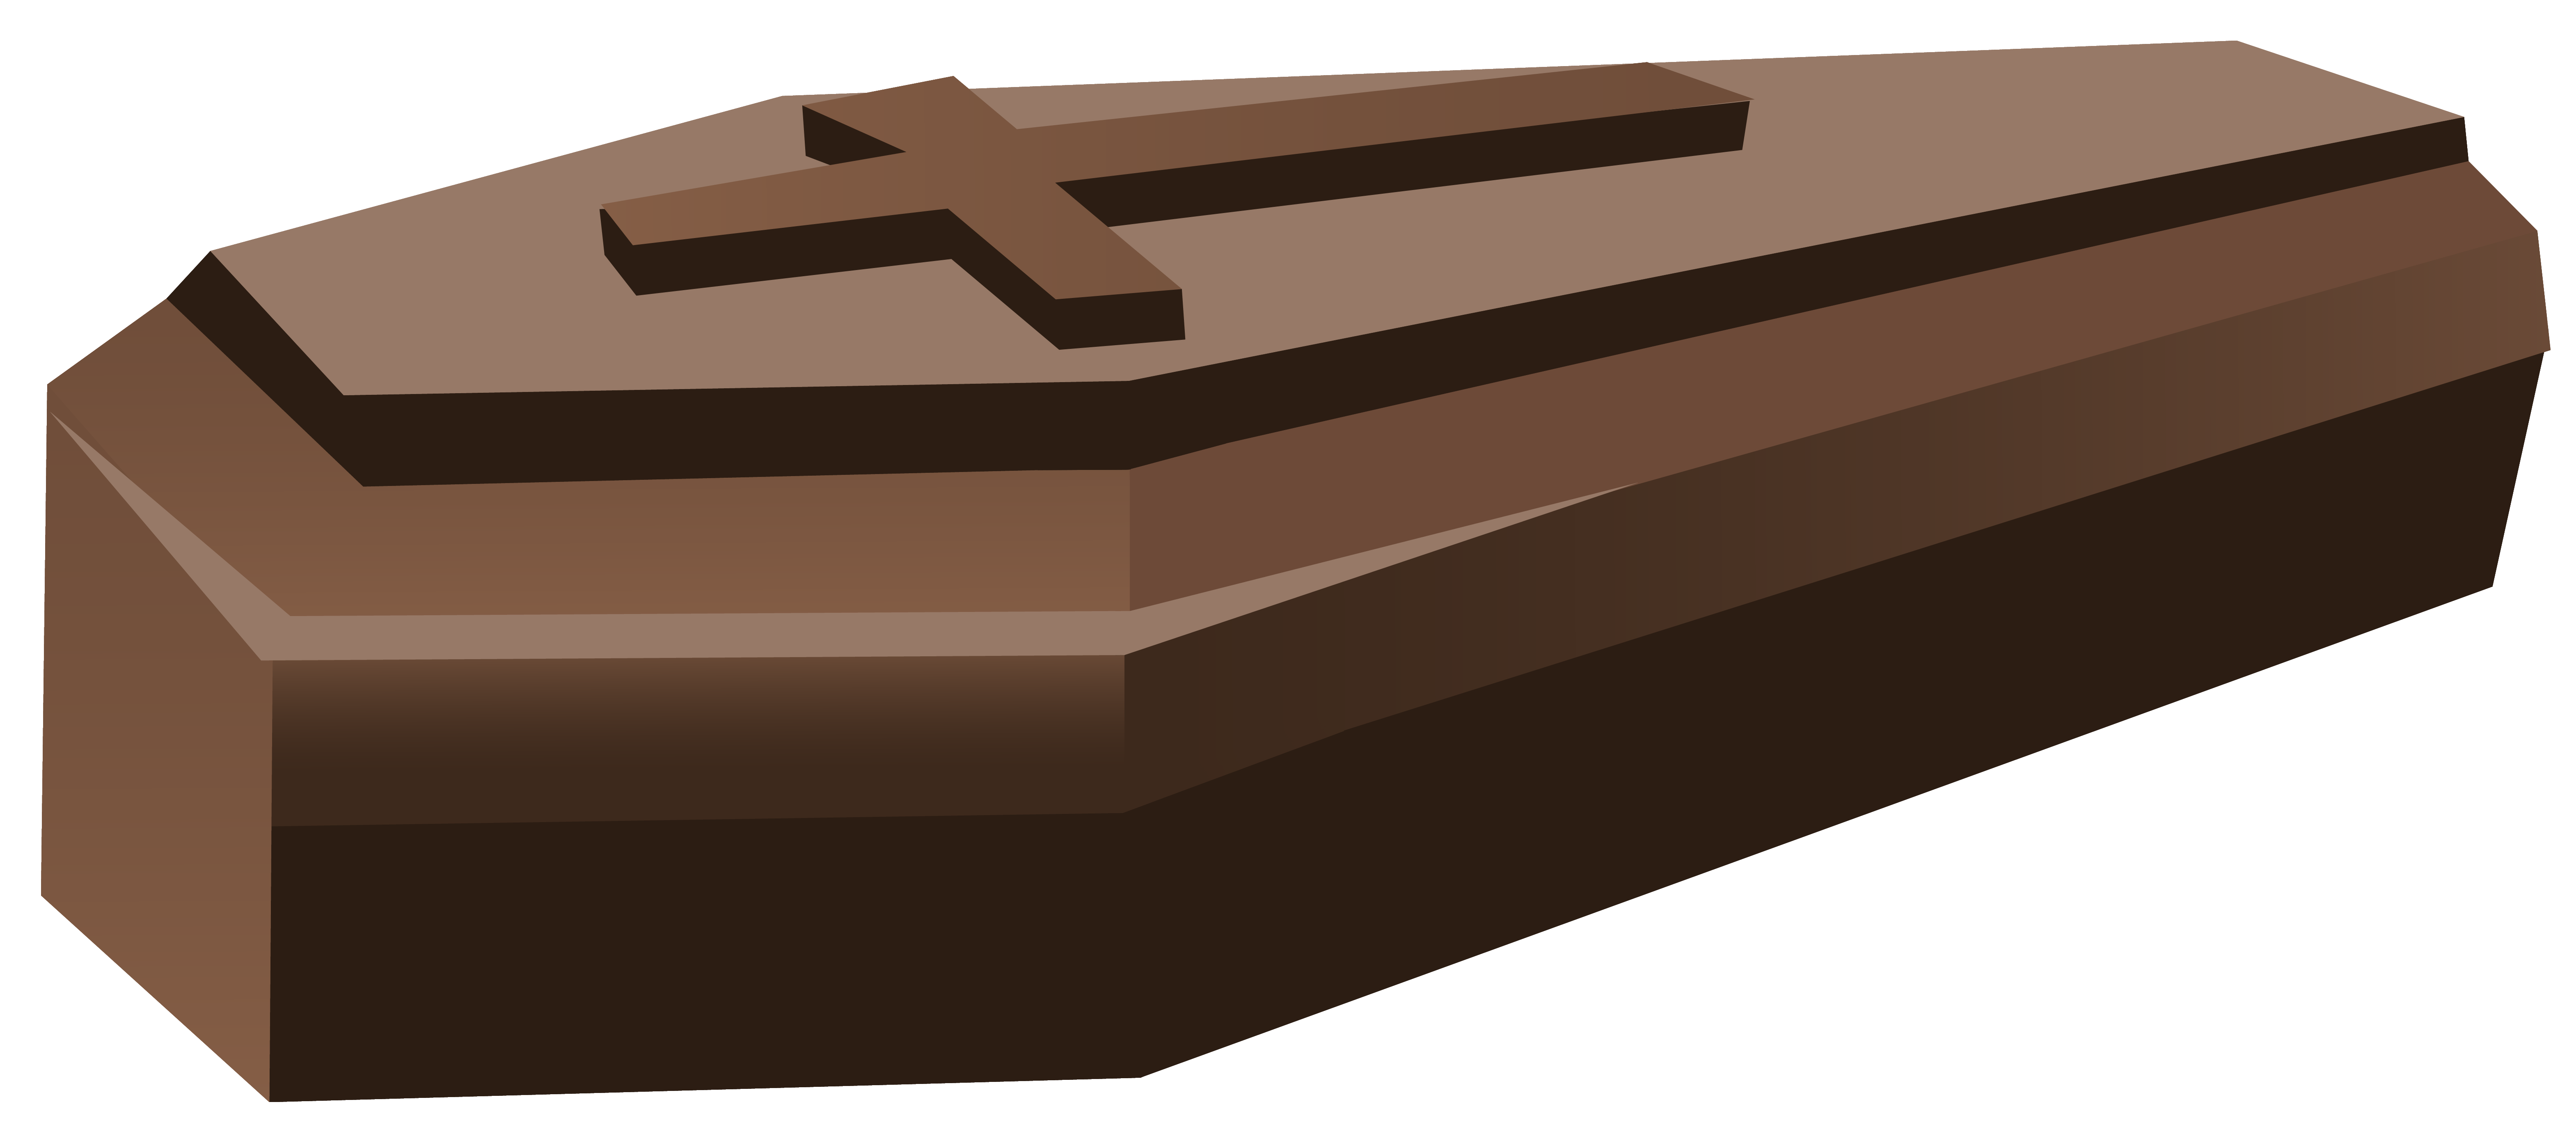 Brown png image gallery. Gravestone clipart coffin box